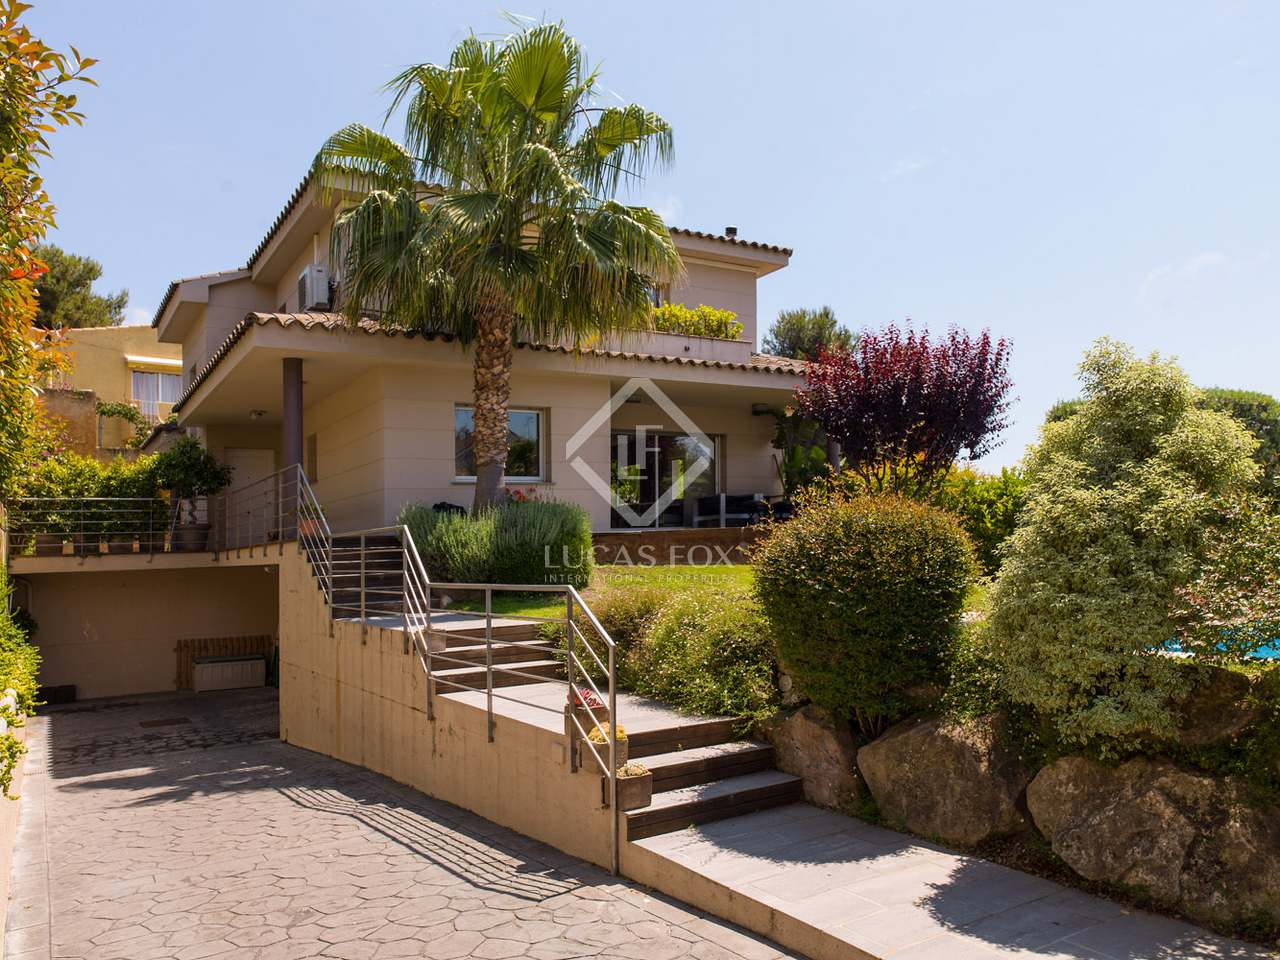 5 bedroom house with pool close to centre of alella maresme for 5 bedroom house with pool